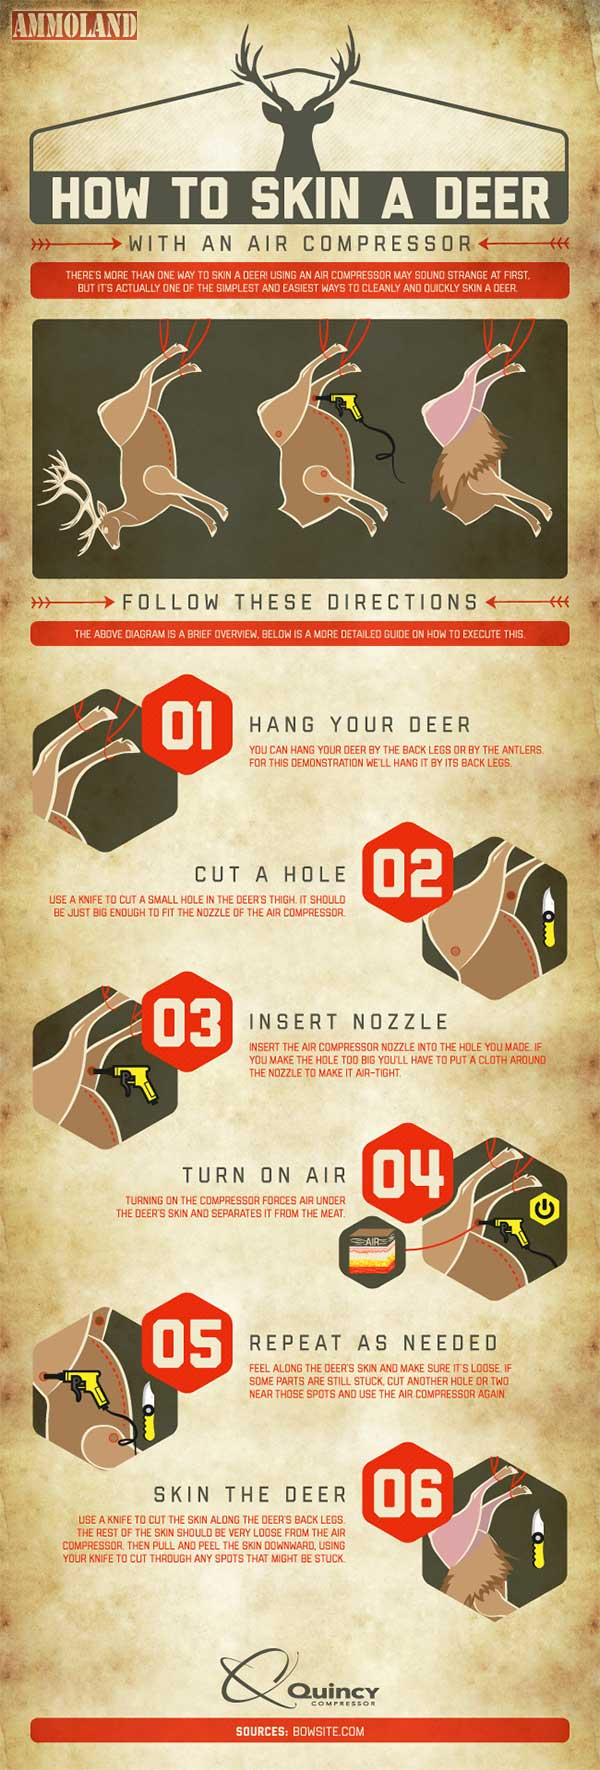 How-to-Skin-A-Deer